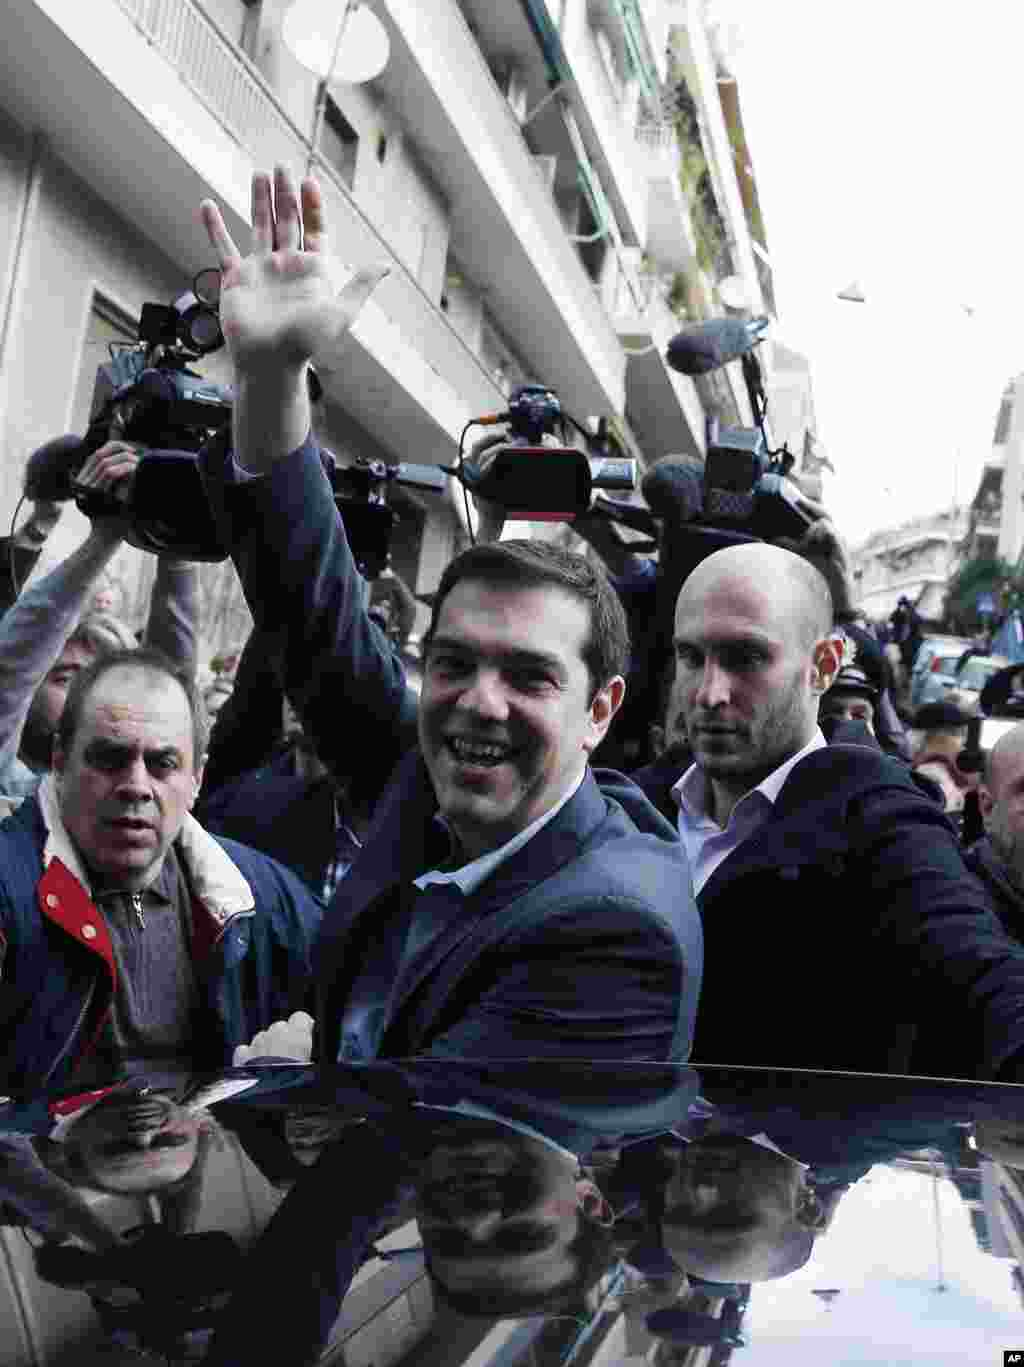 Alexis Tsipras, leader of Greece's Syriza left-wing main opposition waves to his supporters after voting at a polling station in Athens, Jan. 25, 2015.